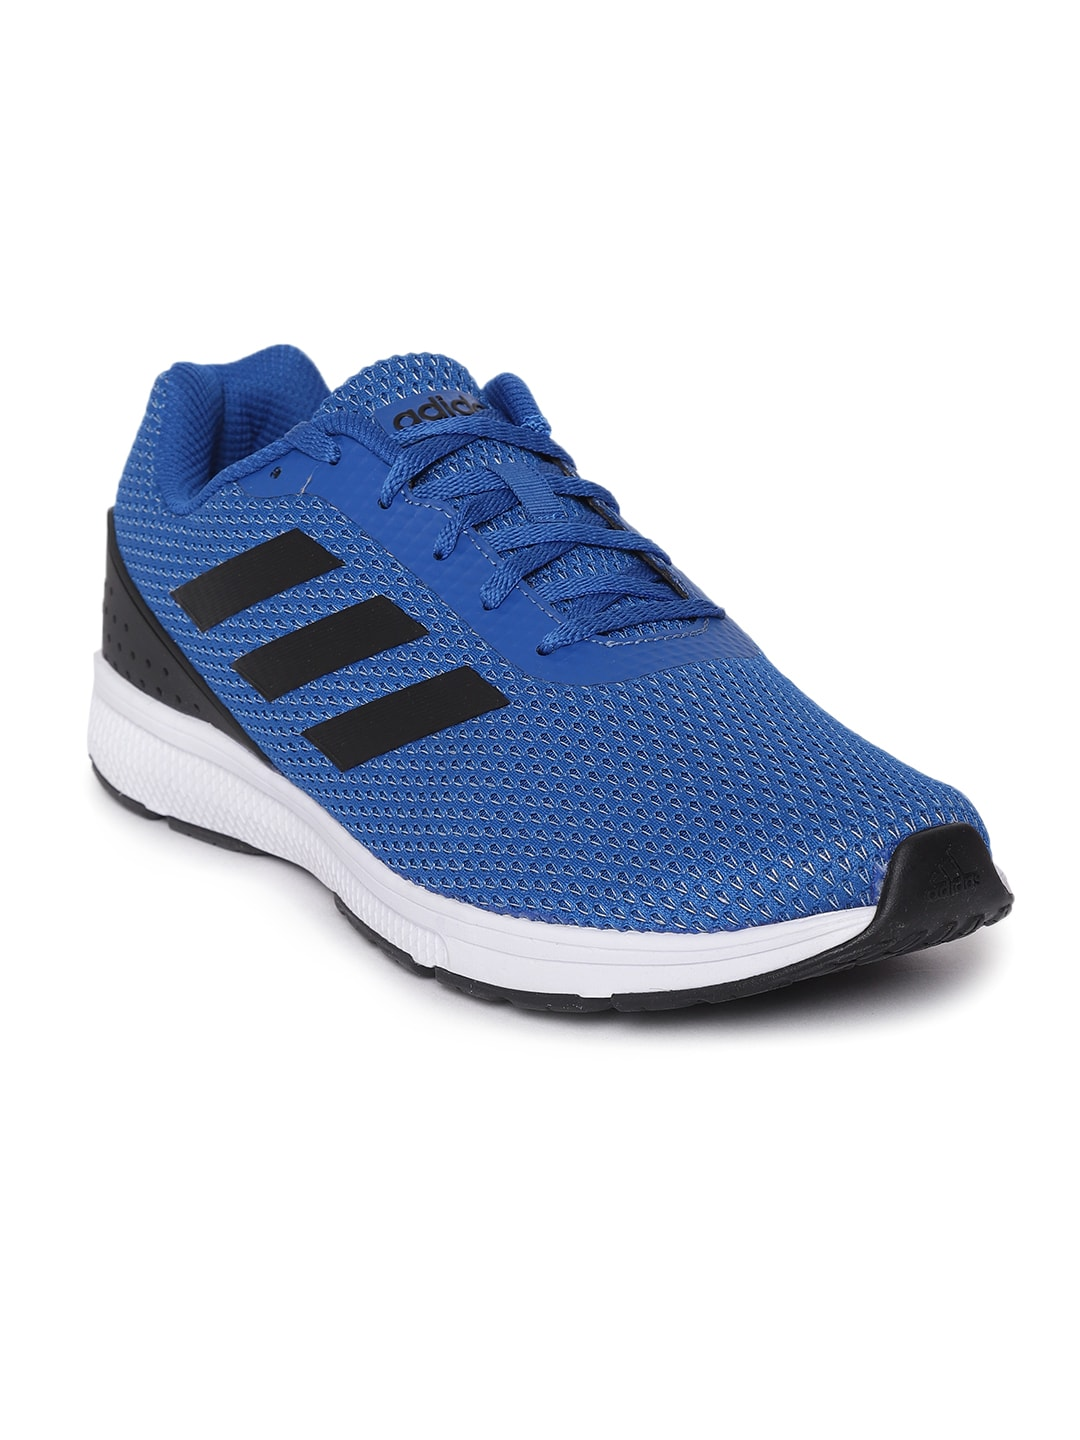 ce2ff769ef2d5 Adidas Shoes - Buy Adidas Shoes for Men   Women Online - Myntra